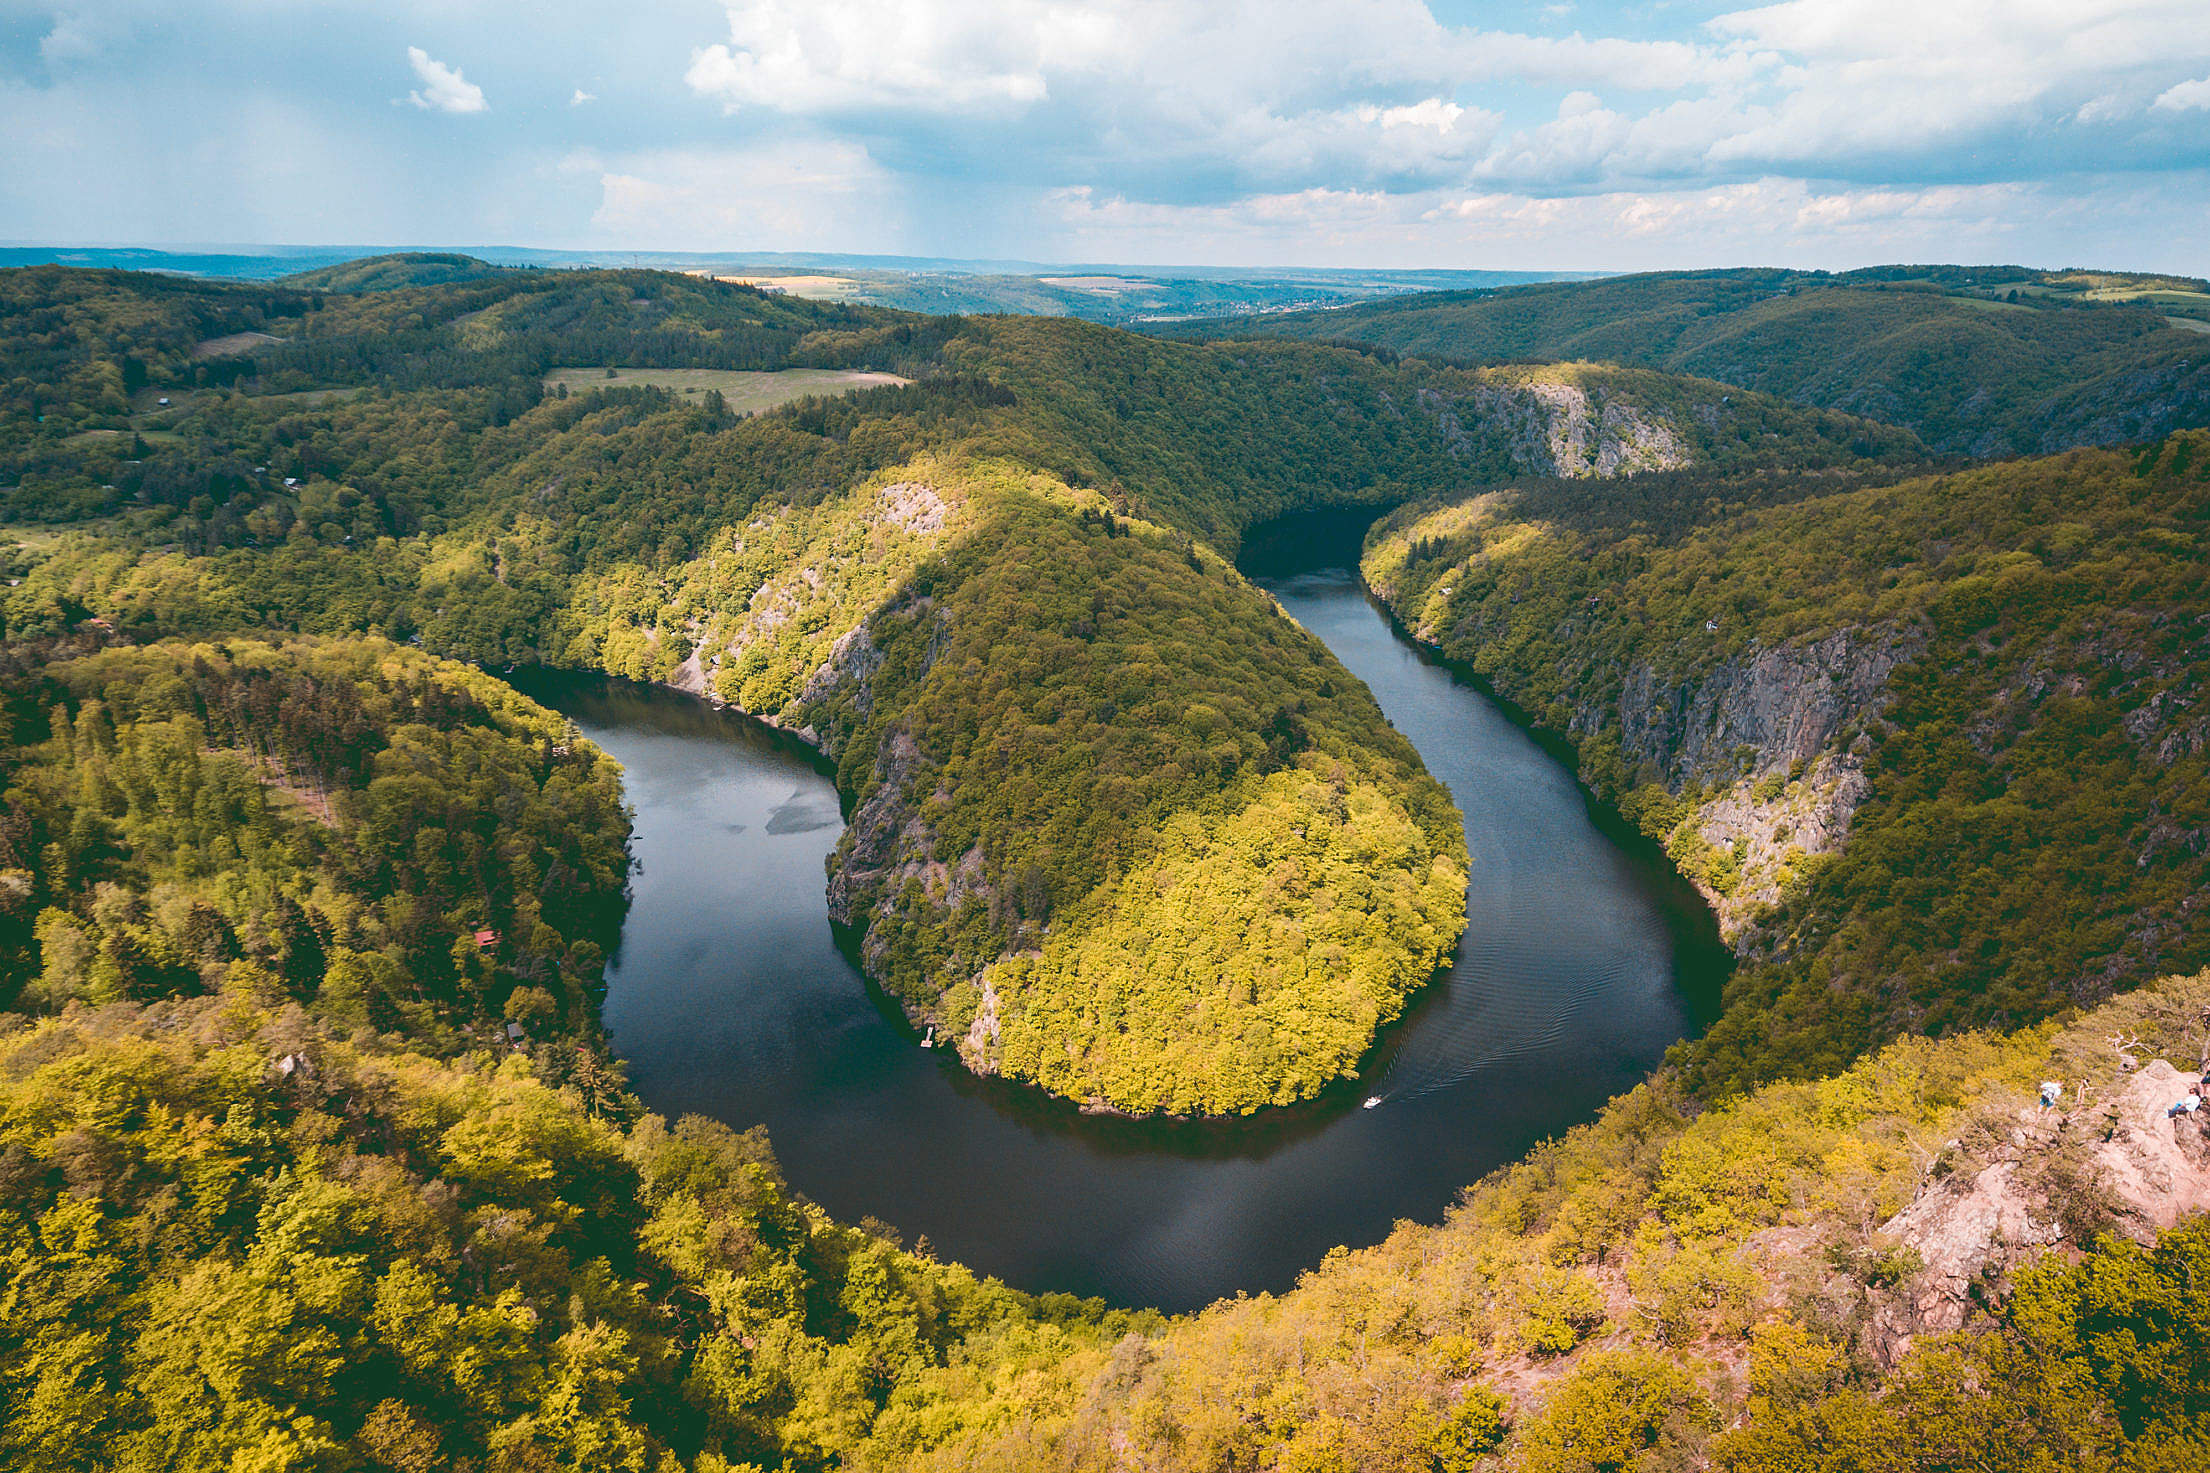 Vyhlidka Maj Czech Natural Look-Out Viewpoint #2 Free Stock Photo